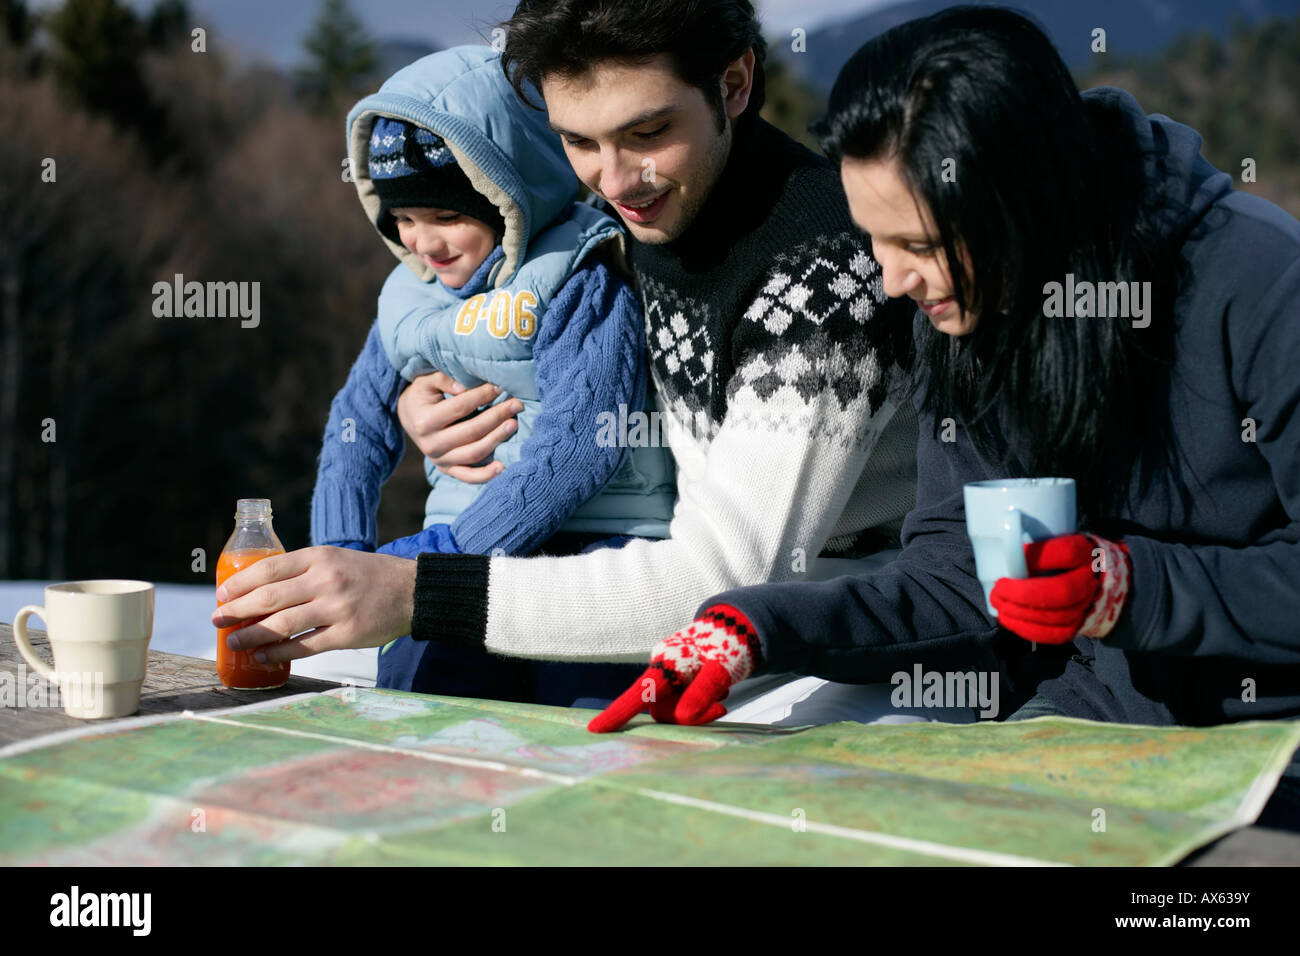 Family looking at a map - Stock Image